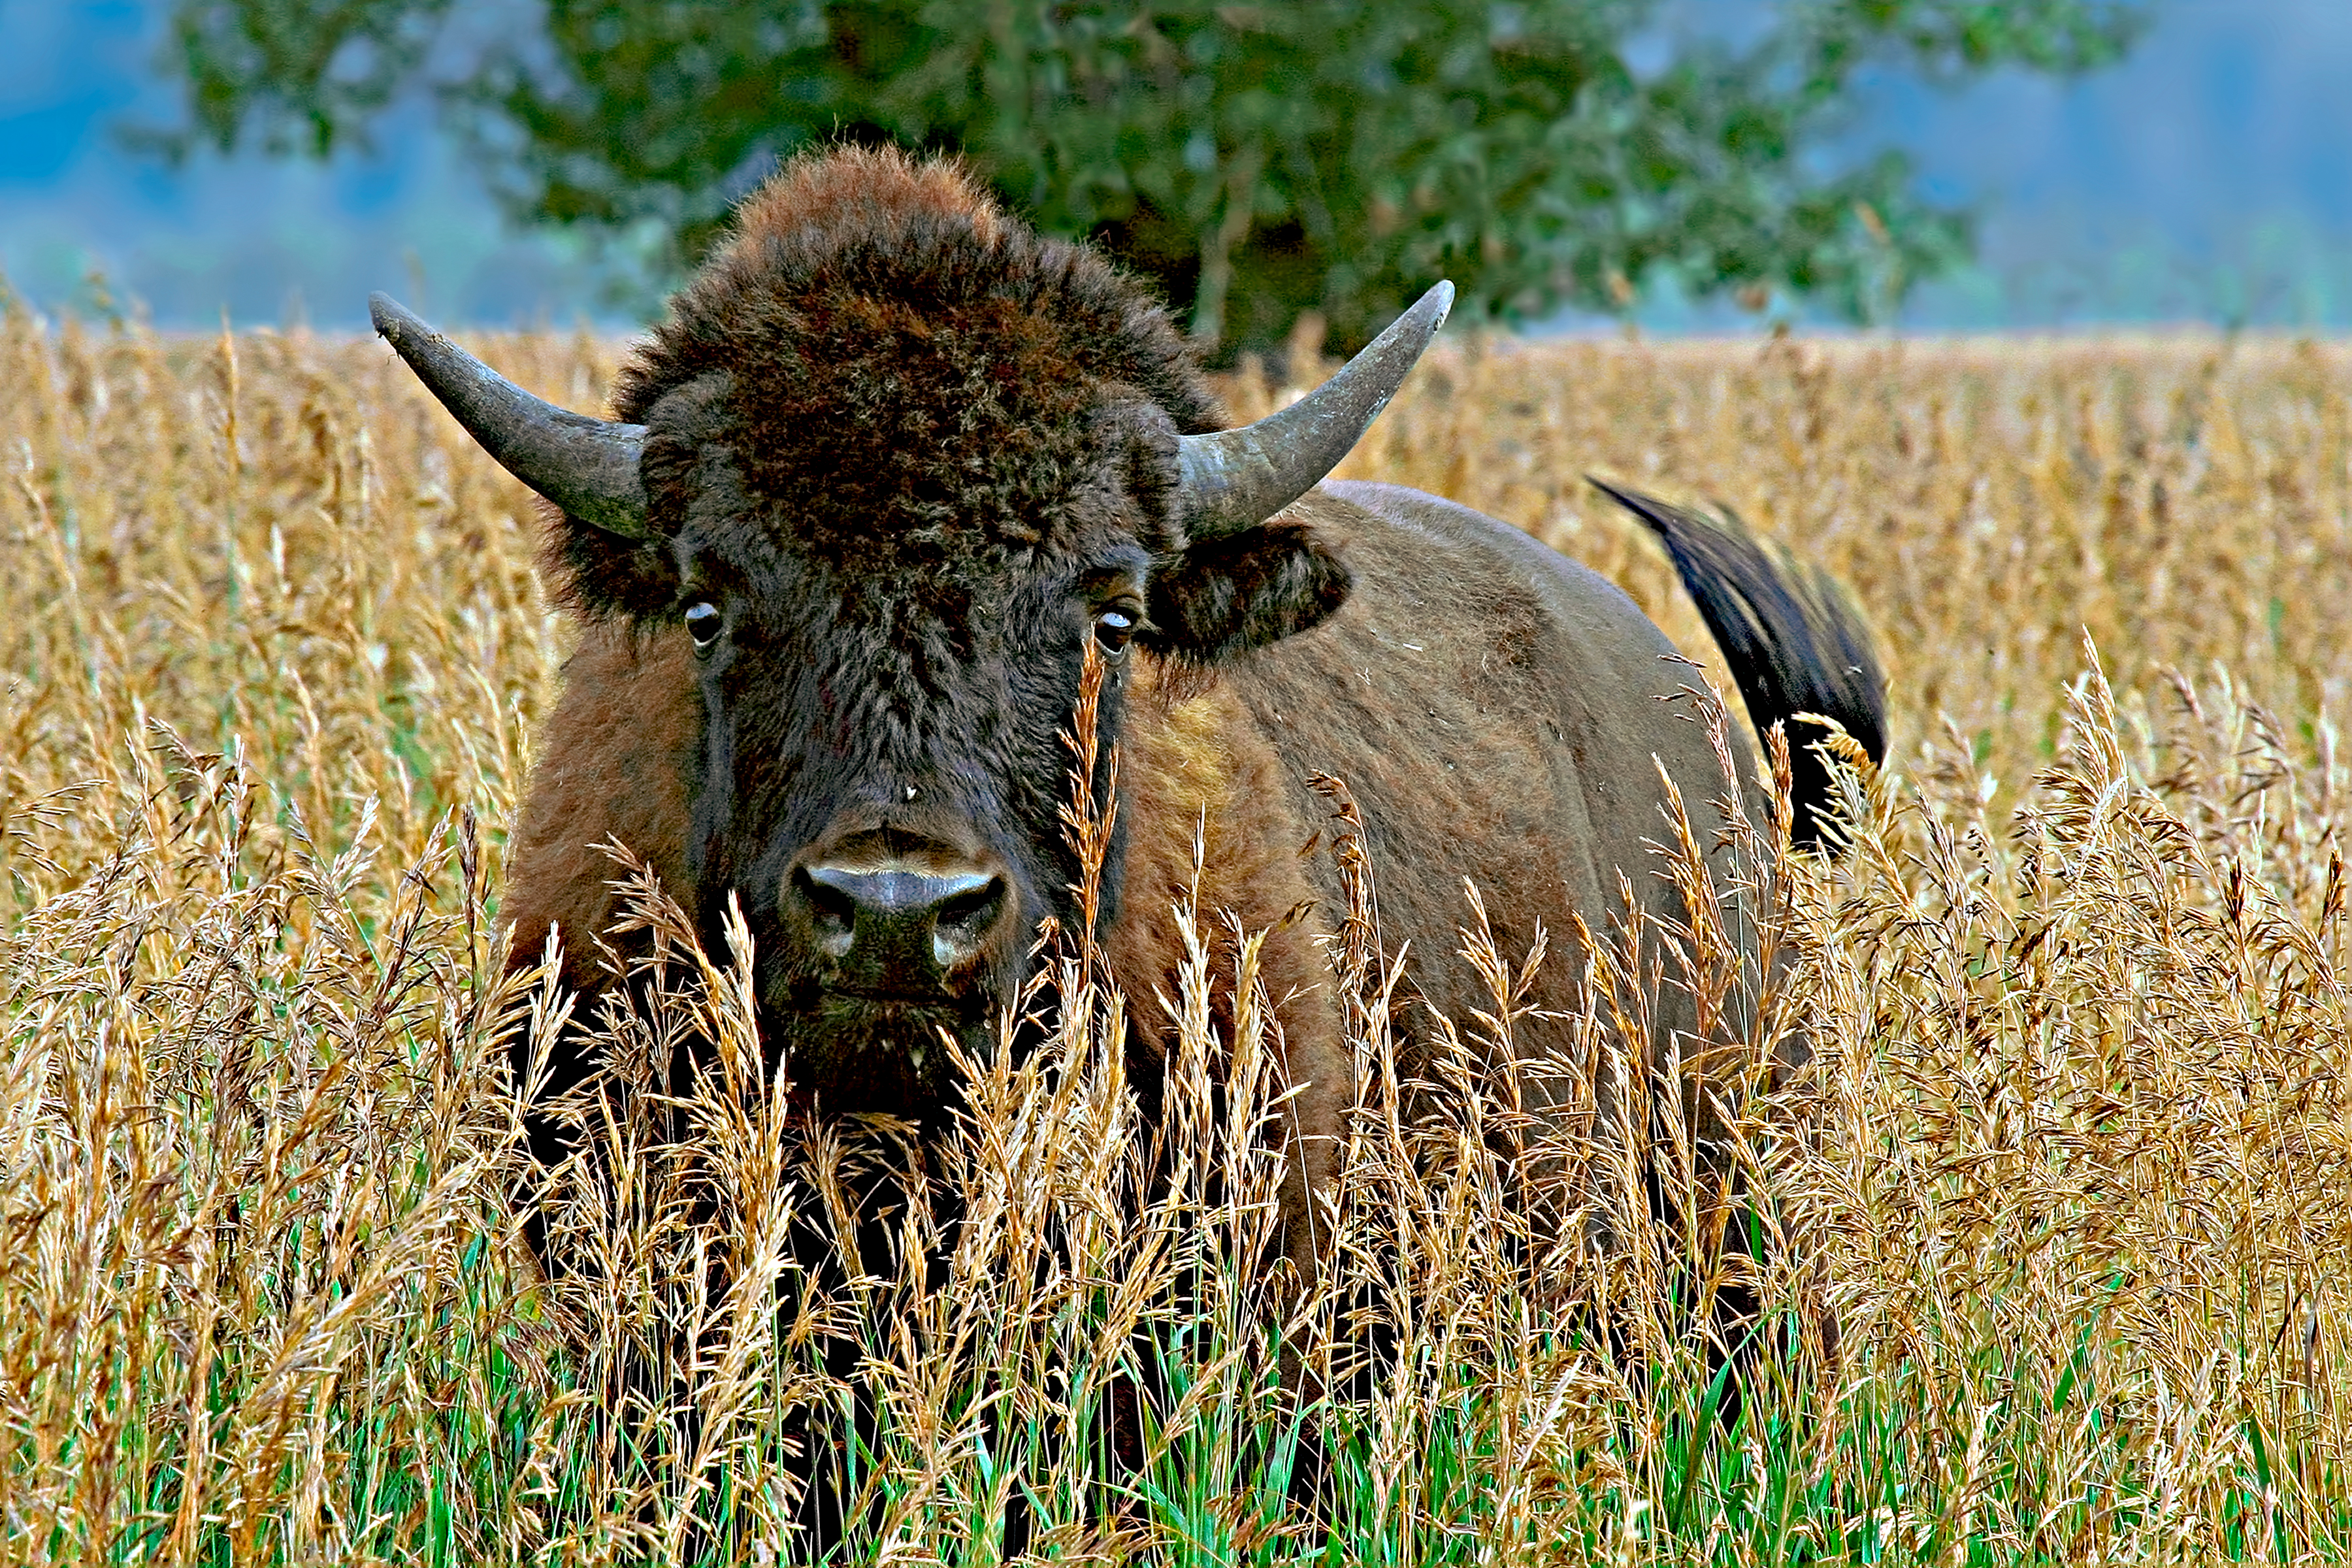 WHERE BUFFALO ROAM - We were in Wyoming when this fella crossed the road about 50 yards ahead of us. I stopped and got out of my car. He didn't take his eyes off me. If I took a step, he took a step back. We watched each other about half a minute before he turned and ran.